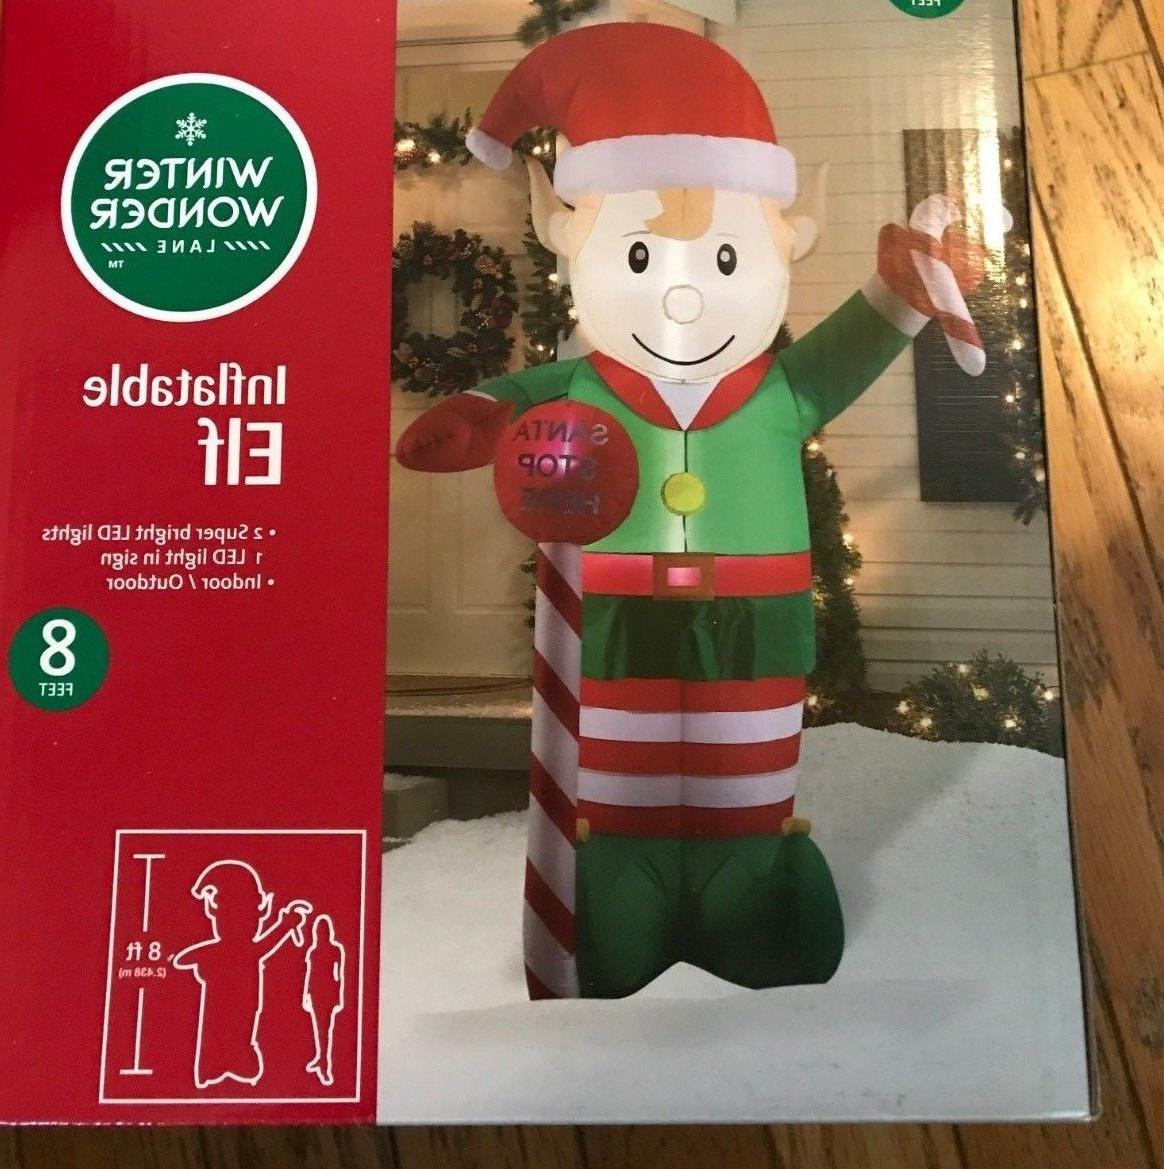 elf airblown inflatable 8 ft tall christmas